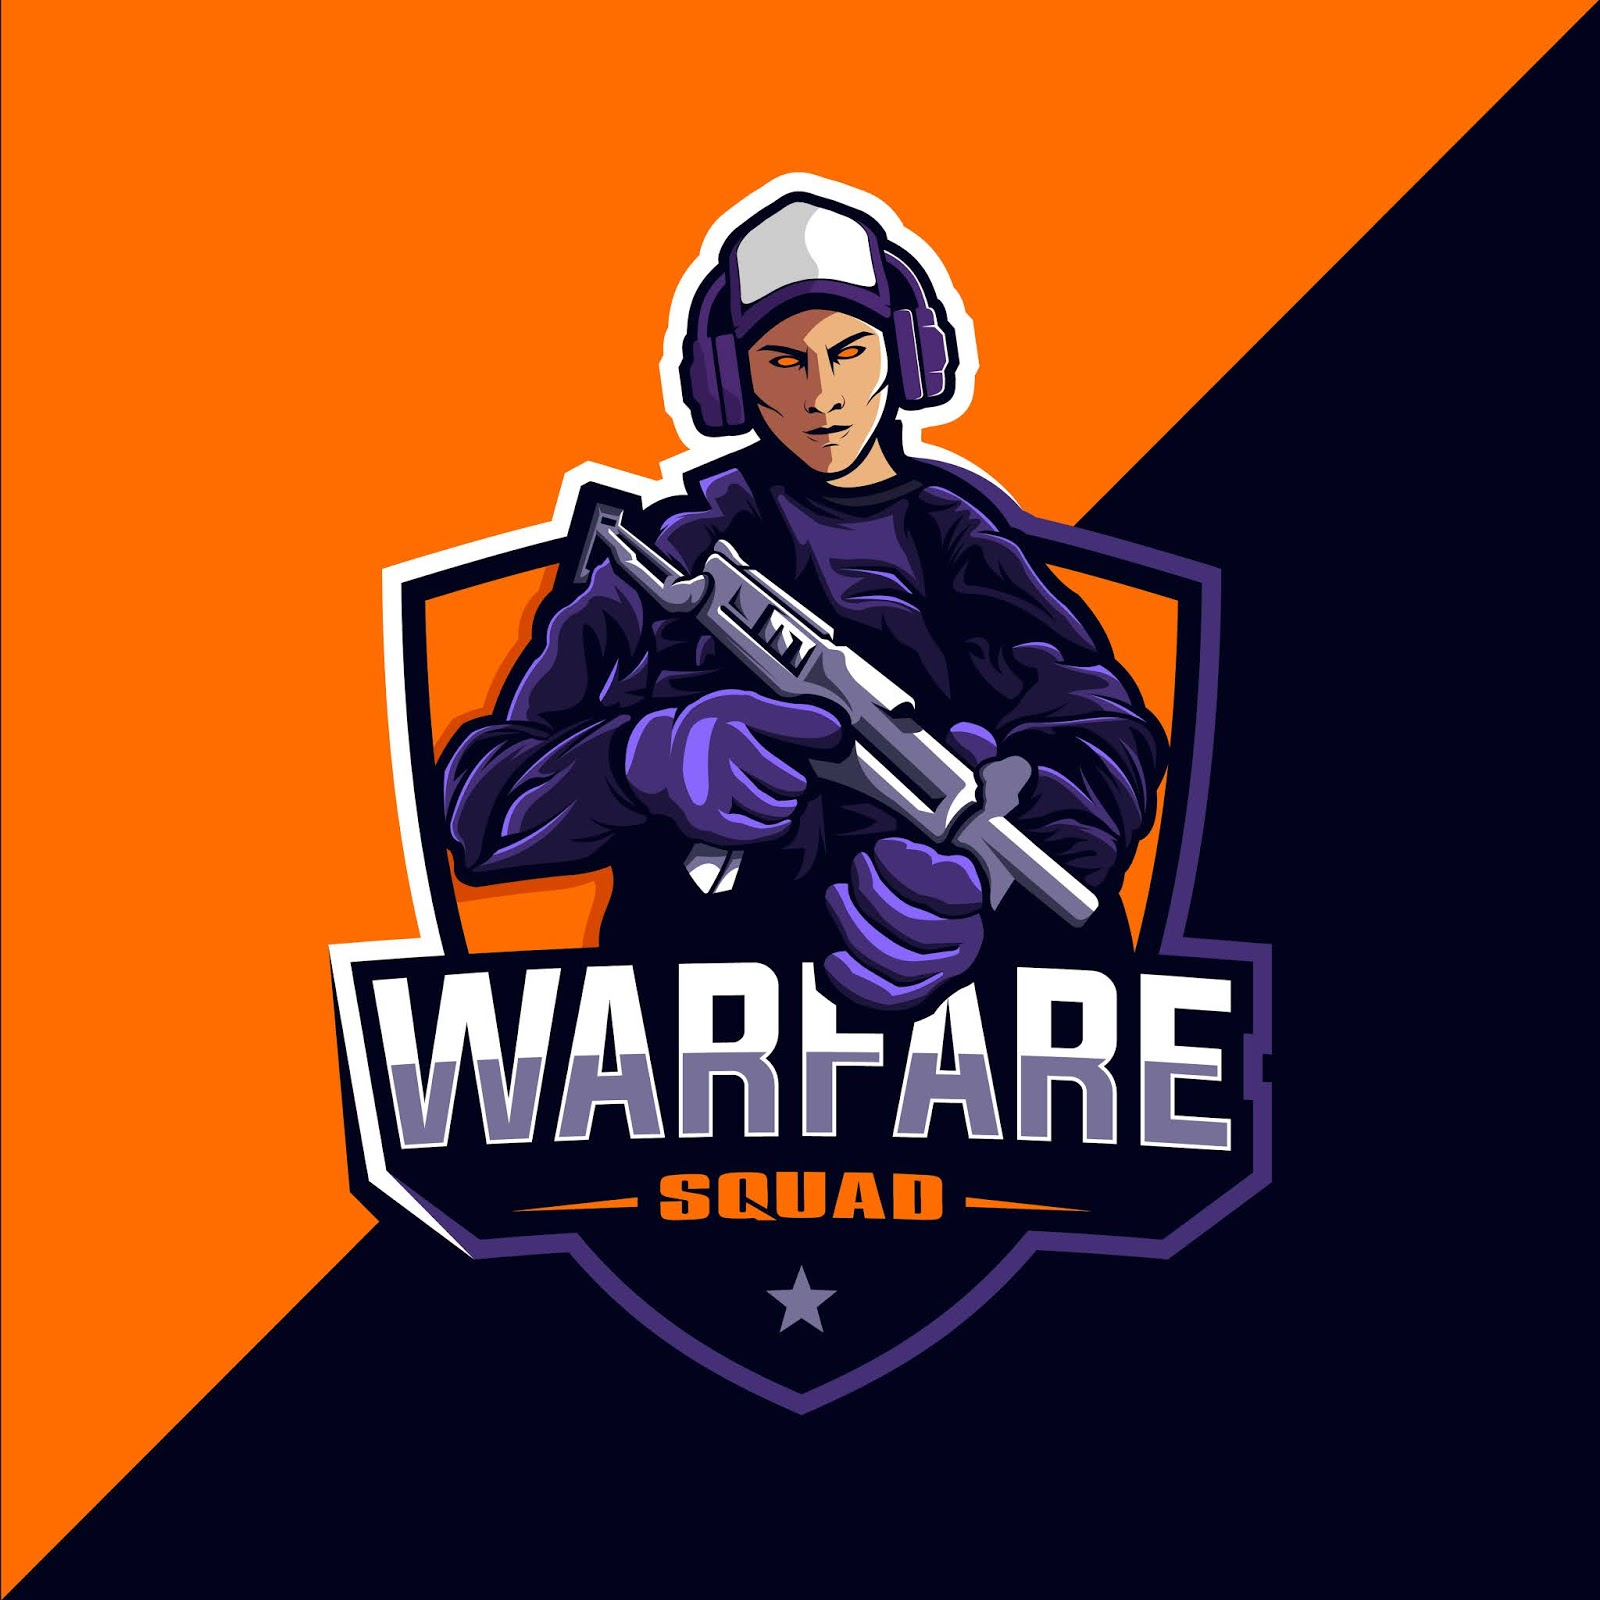 Warfare Squad Game Esport Logo Free Download Vector CDR, AI, EPS and PNG Formats